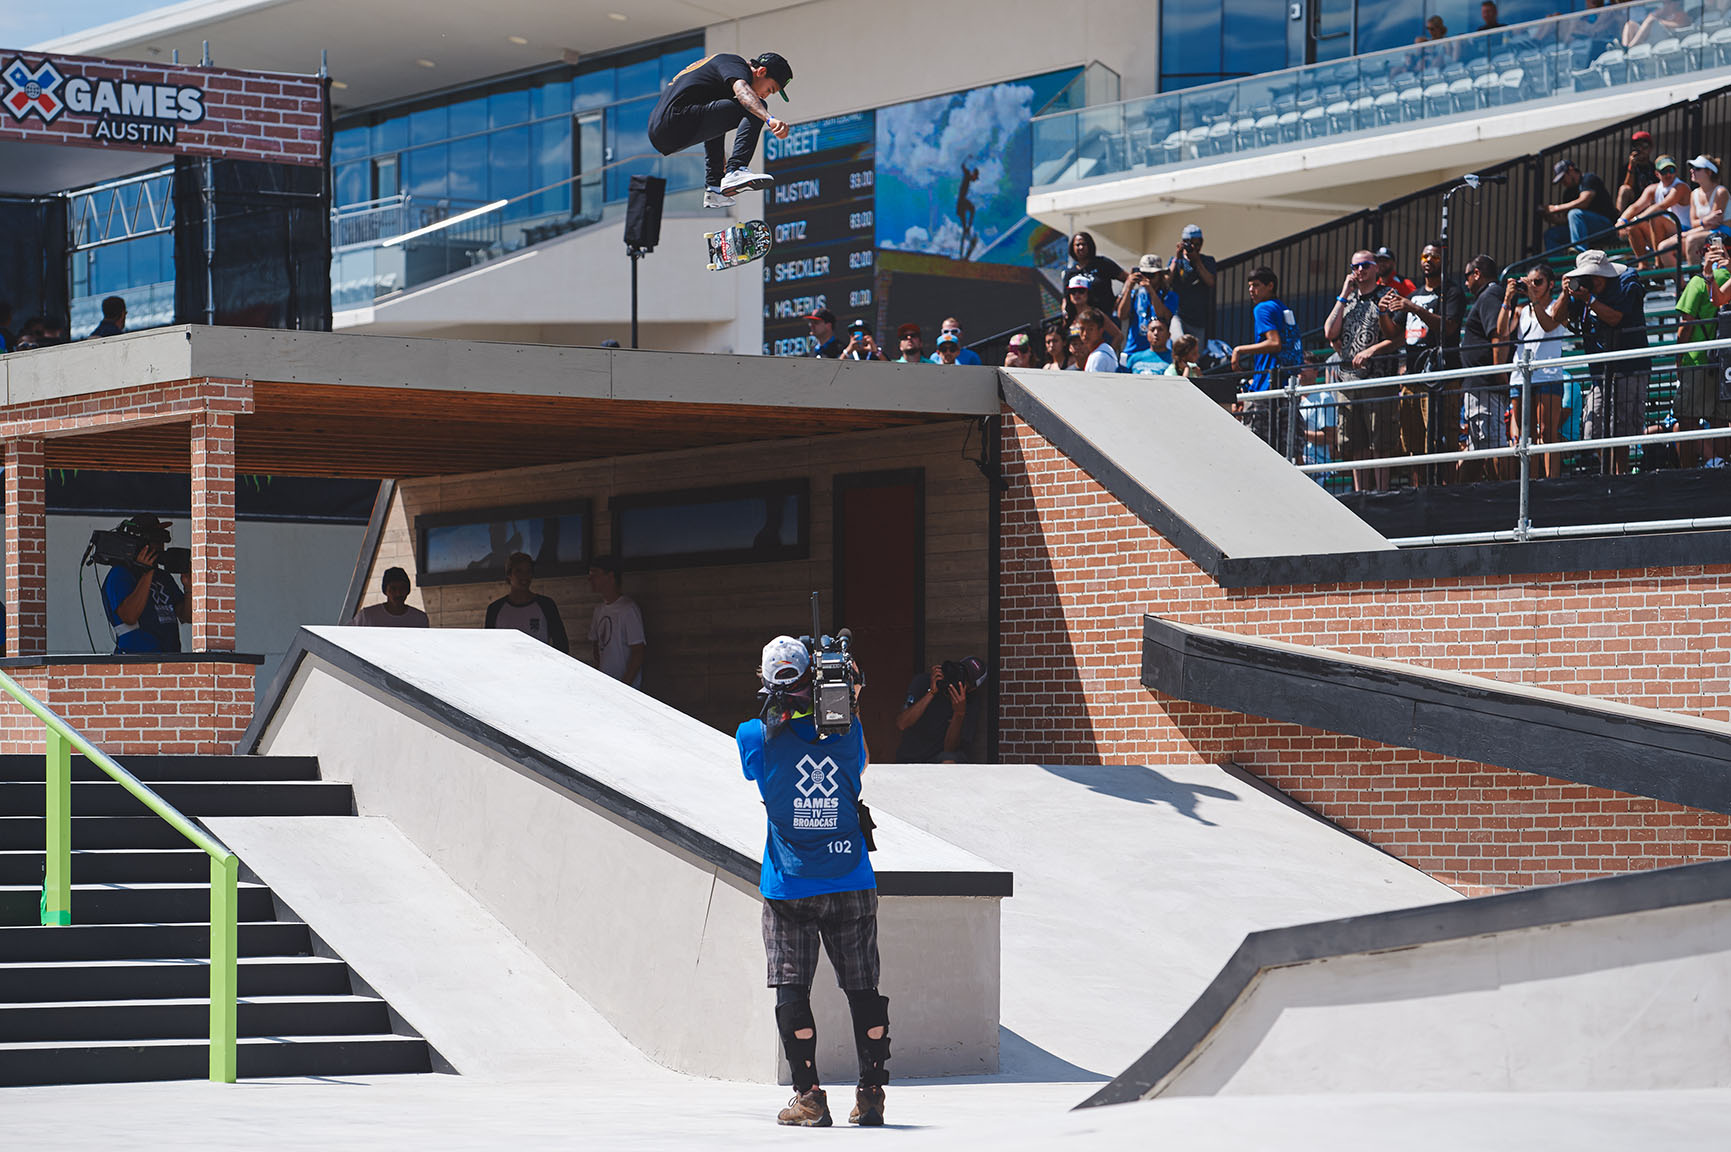 Nyjah Huston lost one contest this year -- to Luan Oliveira at Tampa Pro. Since then, he's swept the Street League podium, and came into X Games the Skateboard Street favorite. Not only did Huston win the contest, he won by an 11-point difference between first and second. Clearly, Huston's reign is far from over.